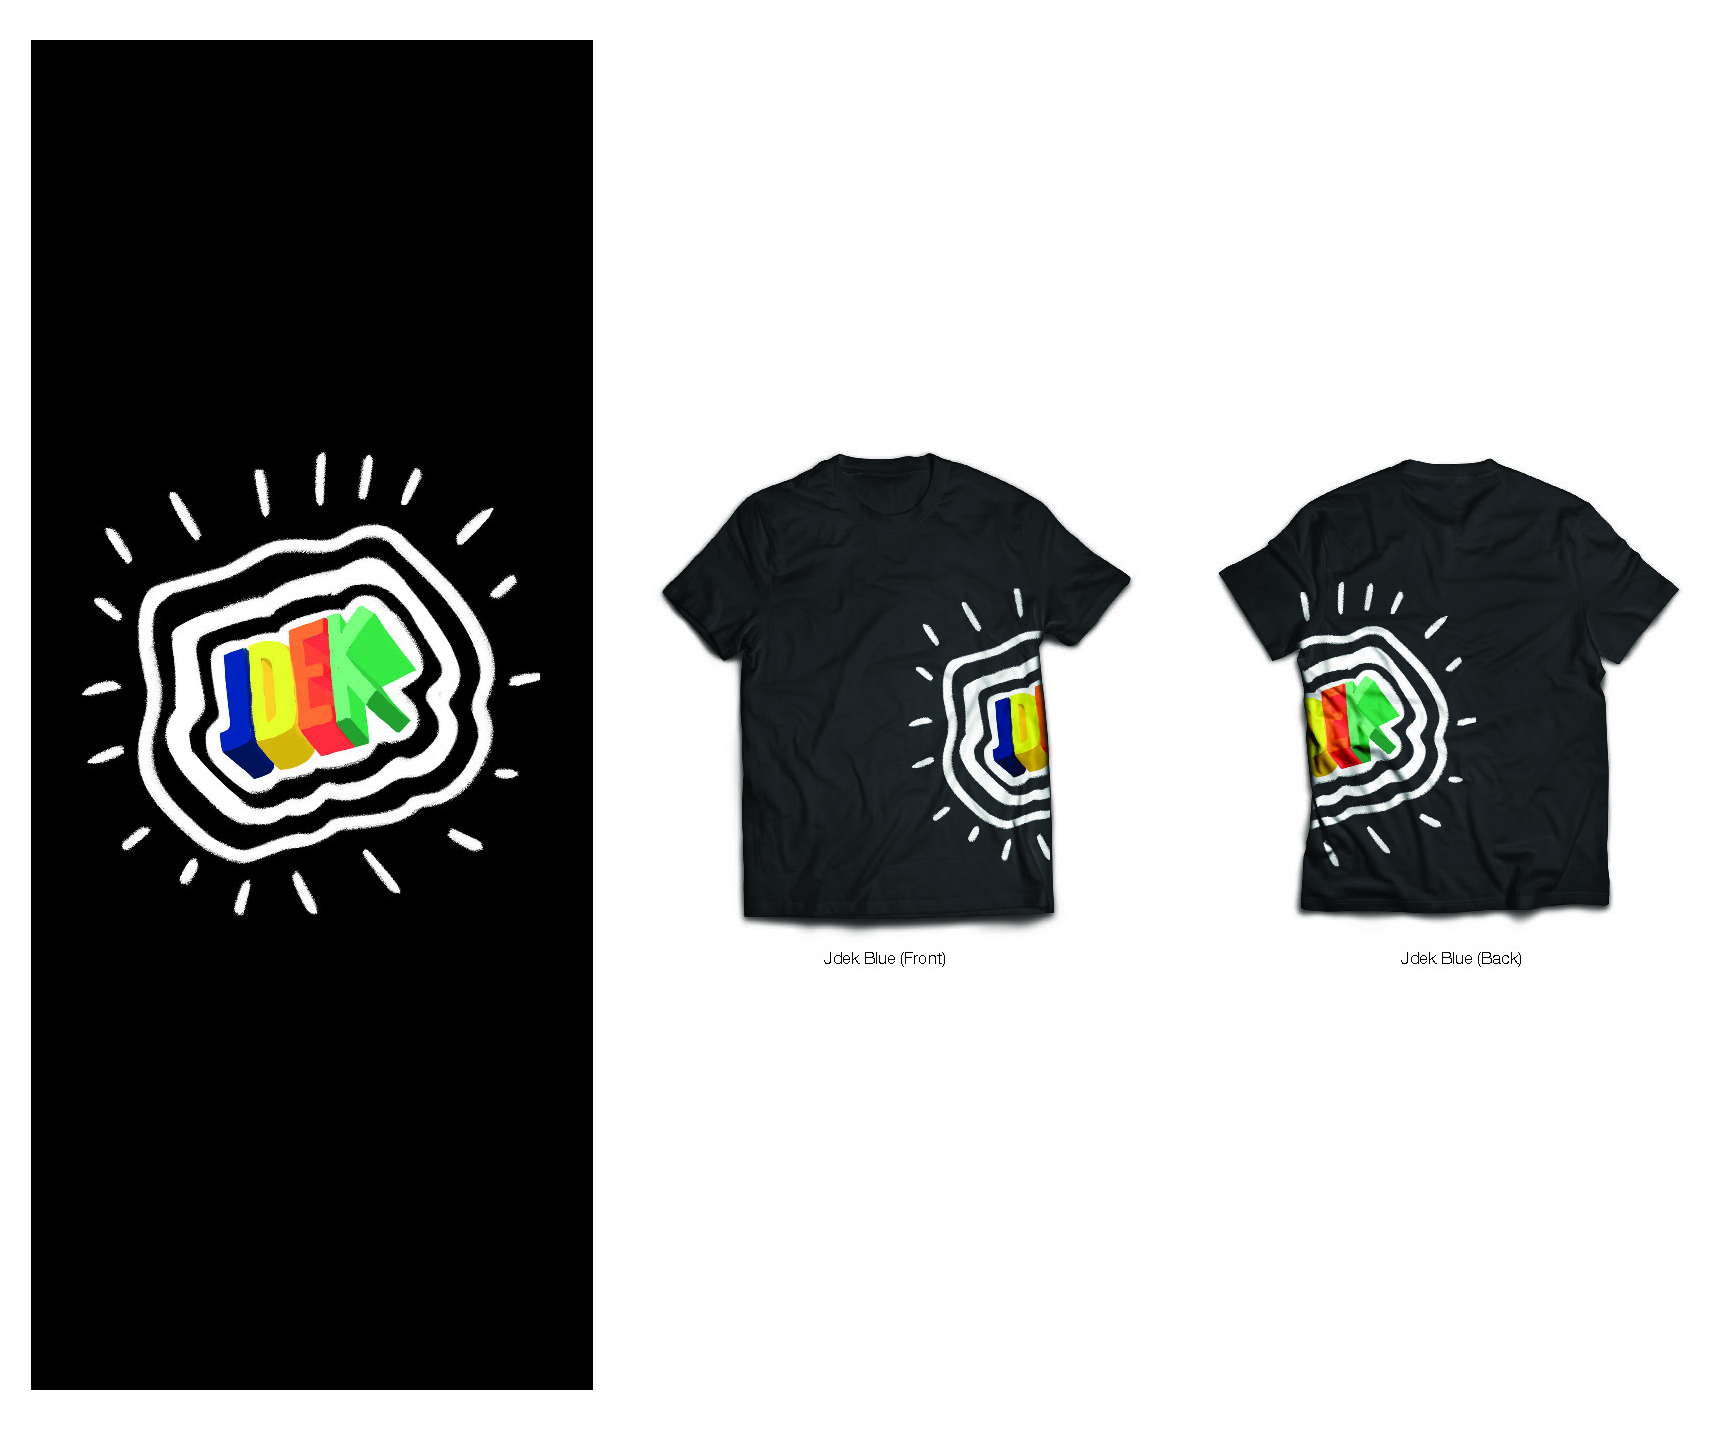 Chalk-inspired t-shirt logo design